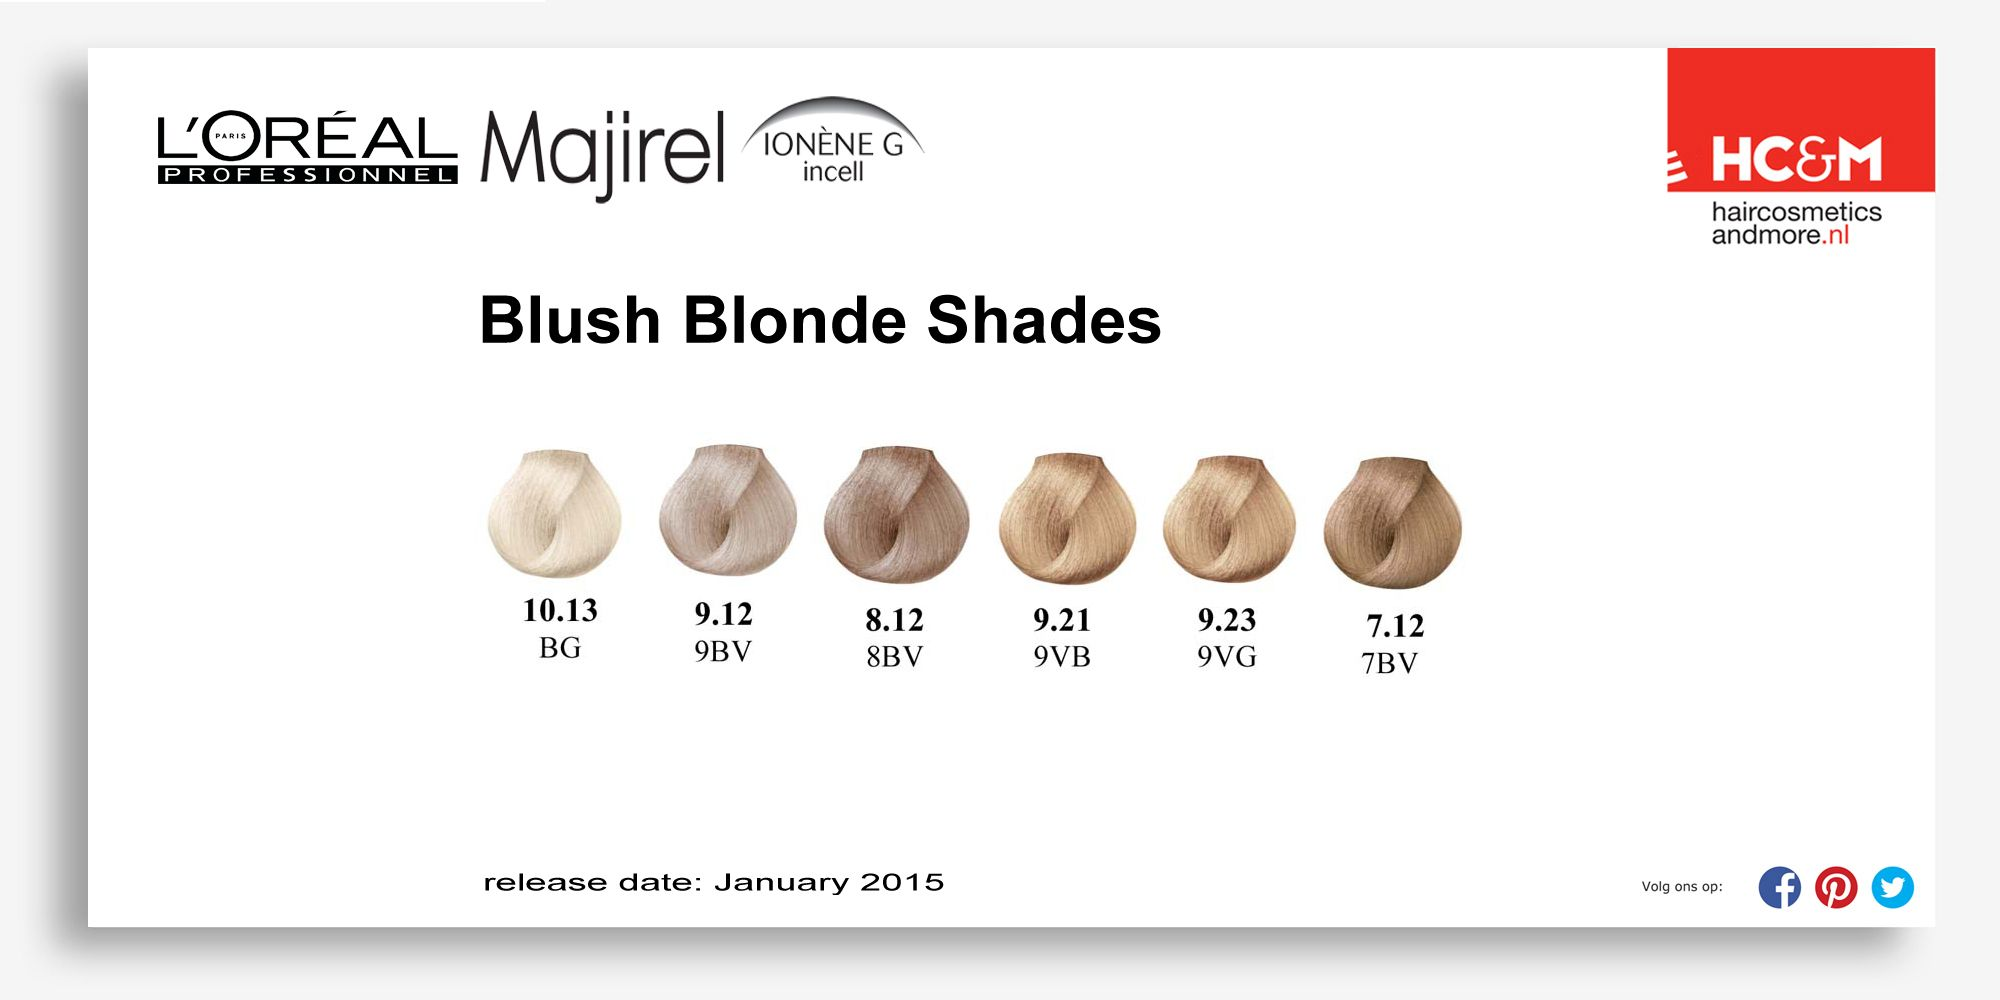 Loral professionel blush blonde shades all about the salon loral professionel blush blonde shades geenschuldenfo Image collections